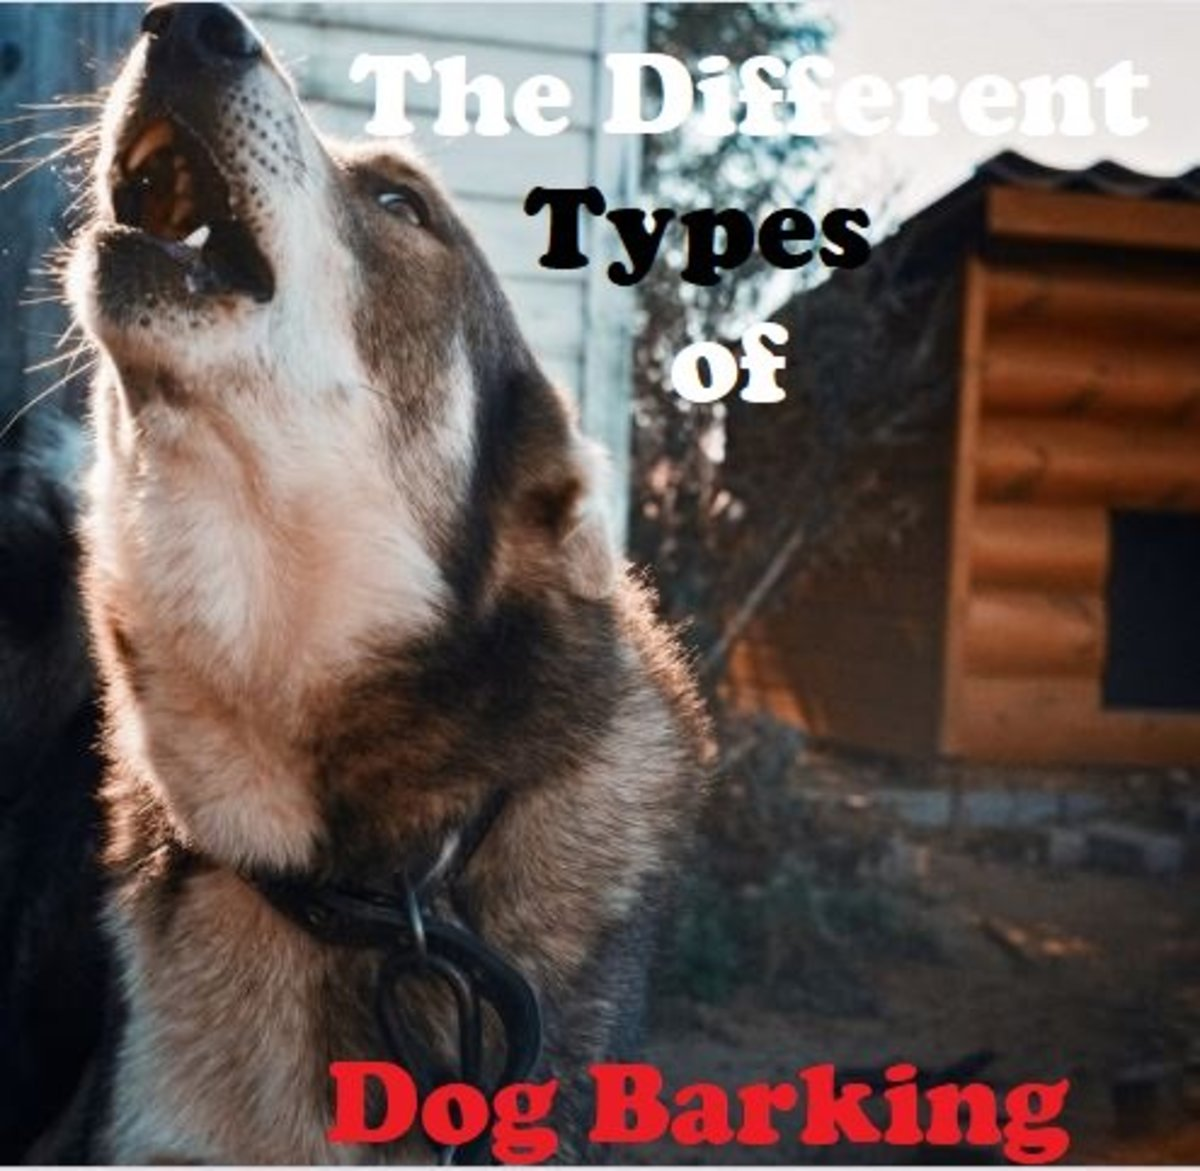 Barking has been attributed to years of domestication.